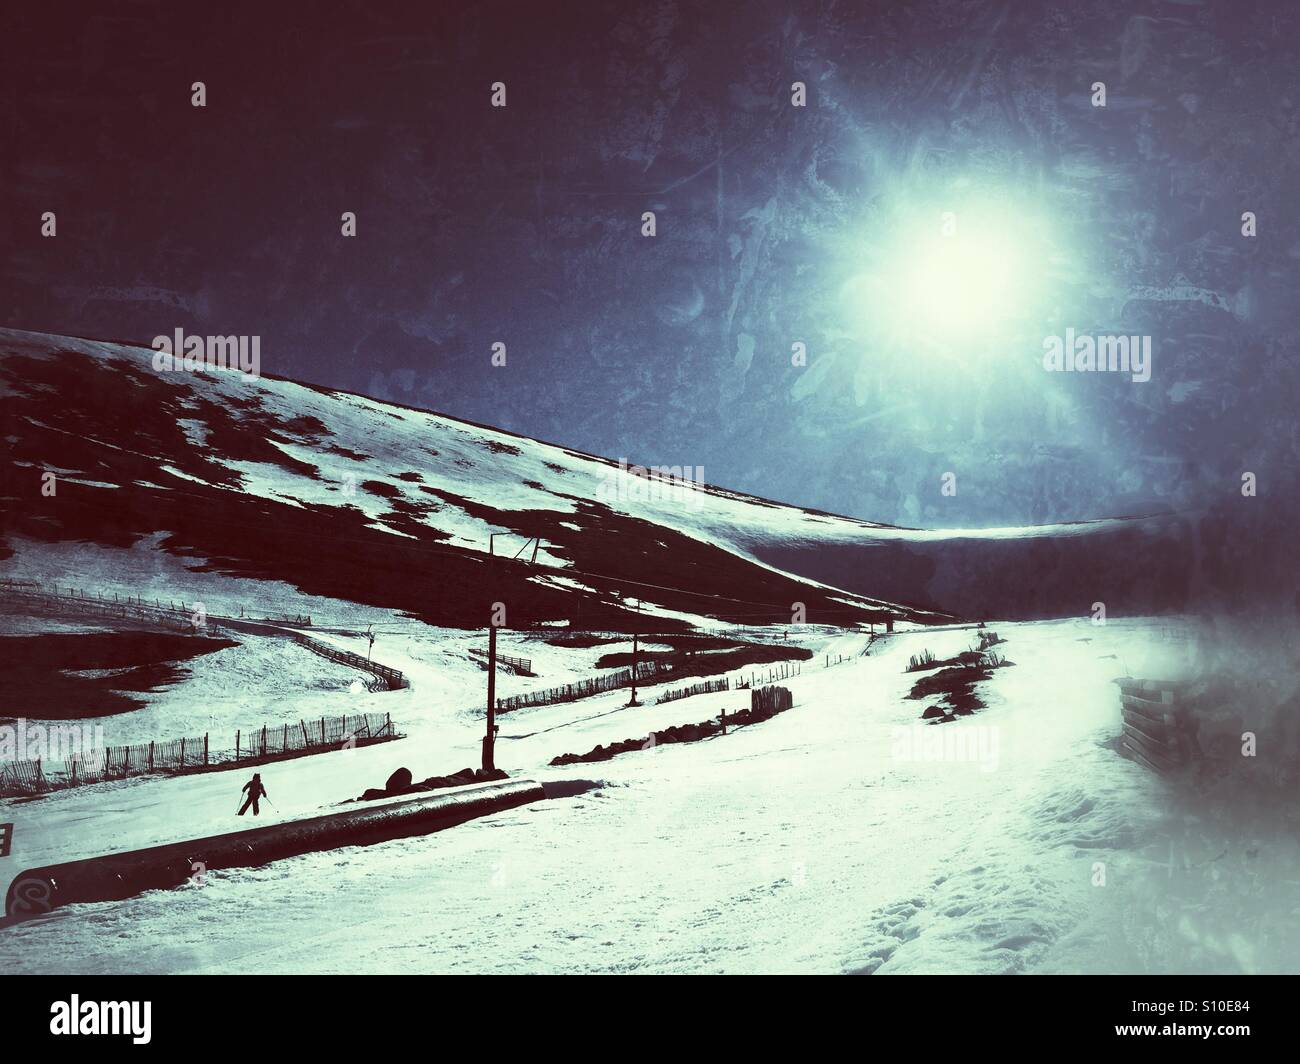 Cairngorm ski resort, last run of the day - Stock Image